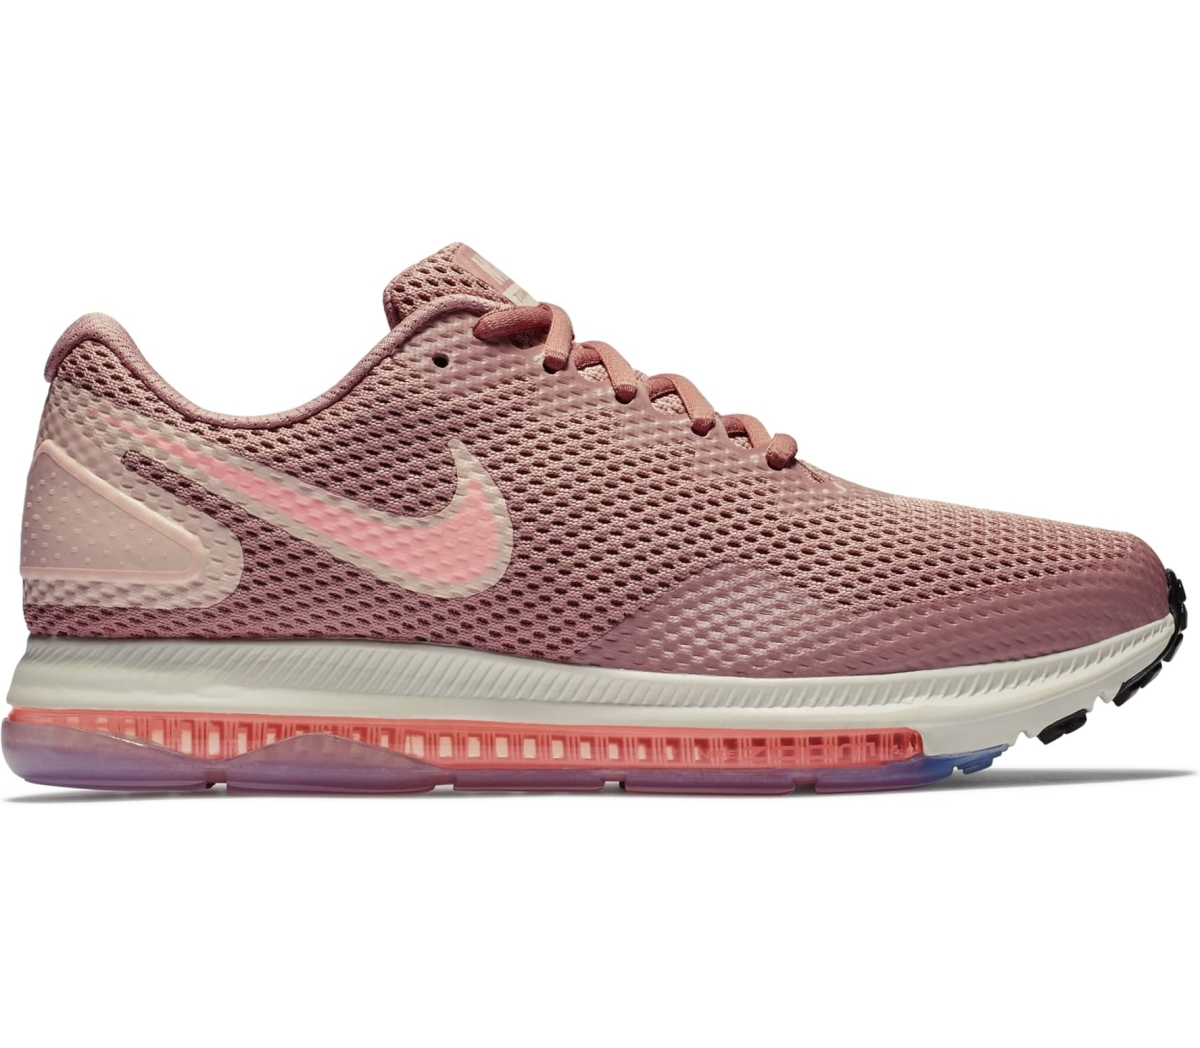 6c0112f03b180 ... womens dusty peach metallic red bronze aj0036 200 item no. aj0036 200  7666d 37400  cheap nike zoom all out low 2 aj0036 604 everysize 04178 0c34f